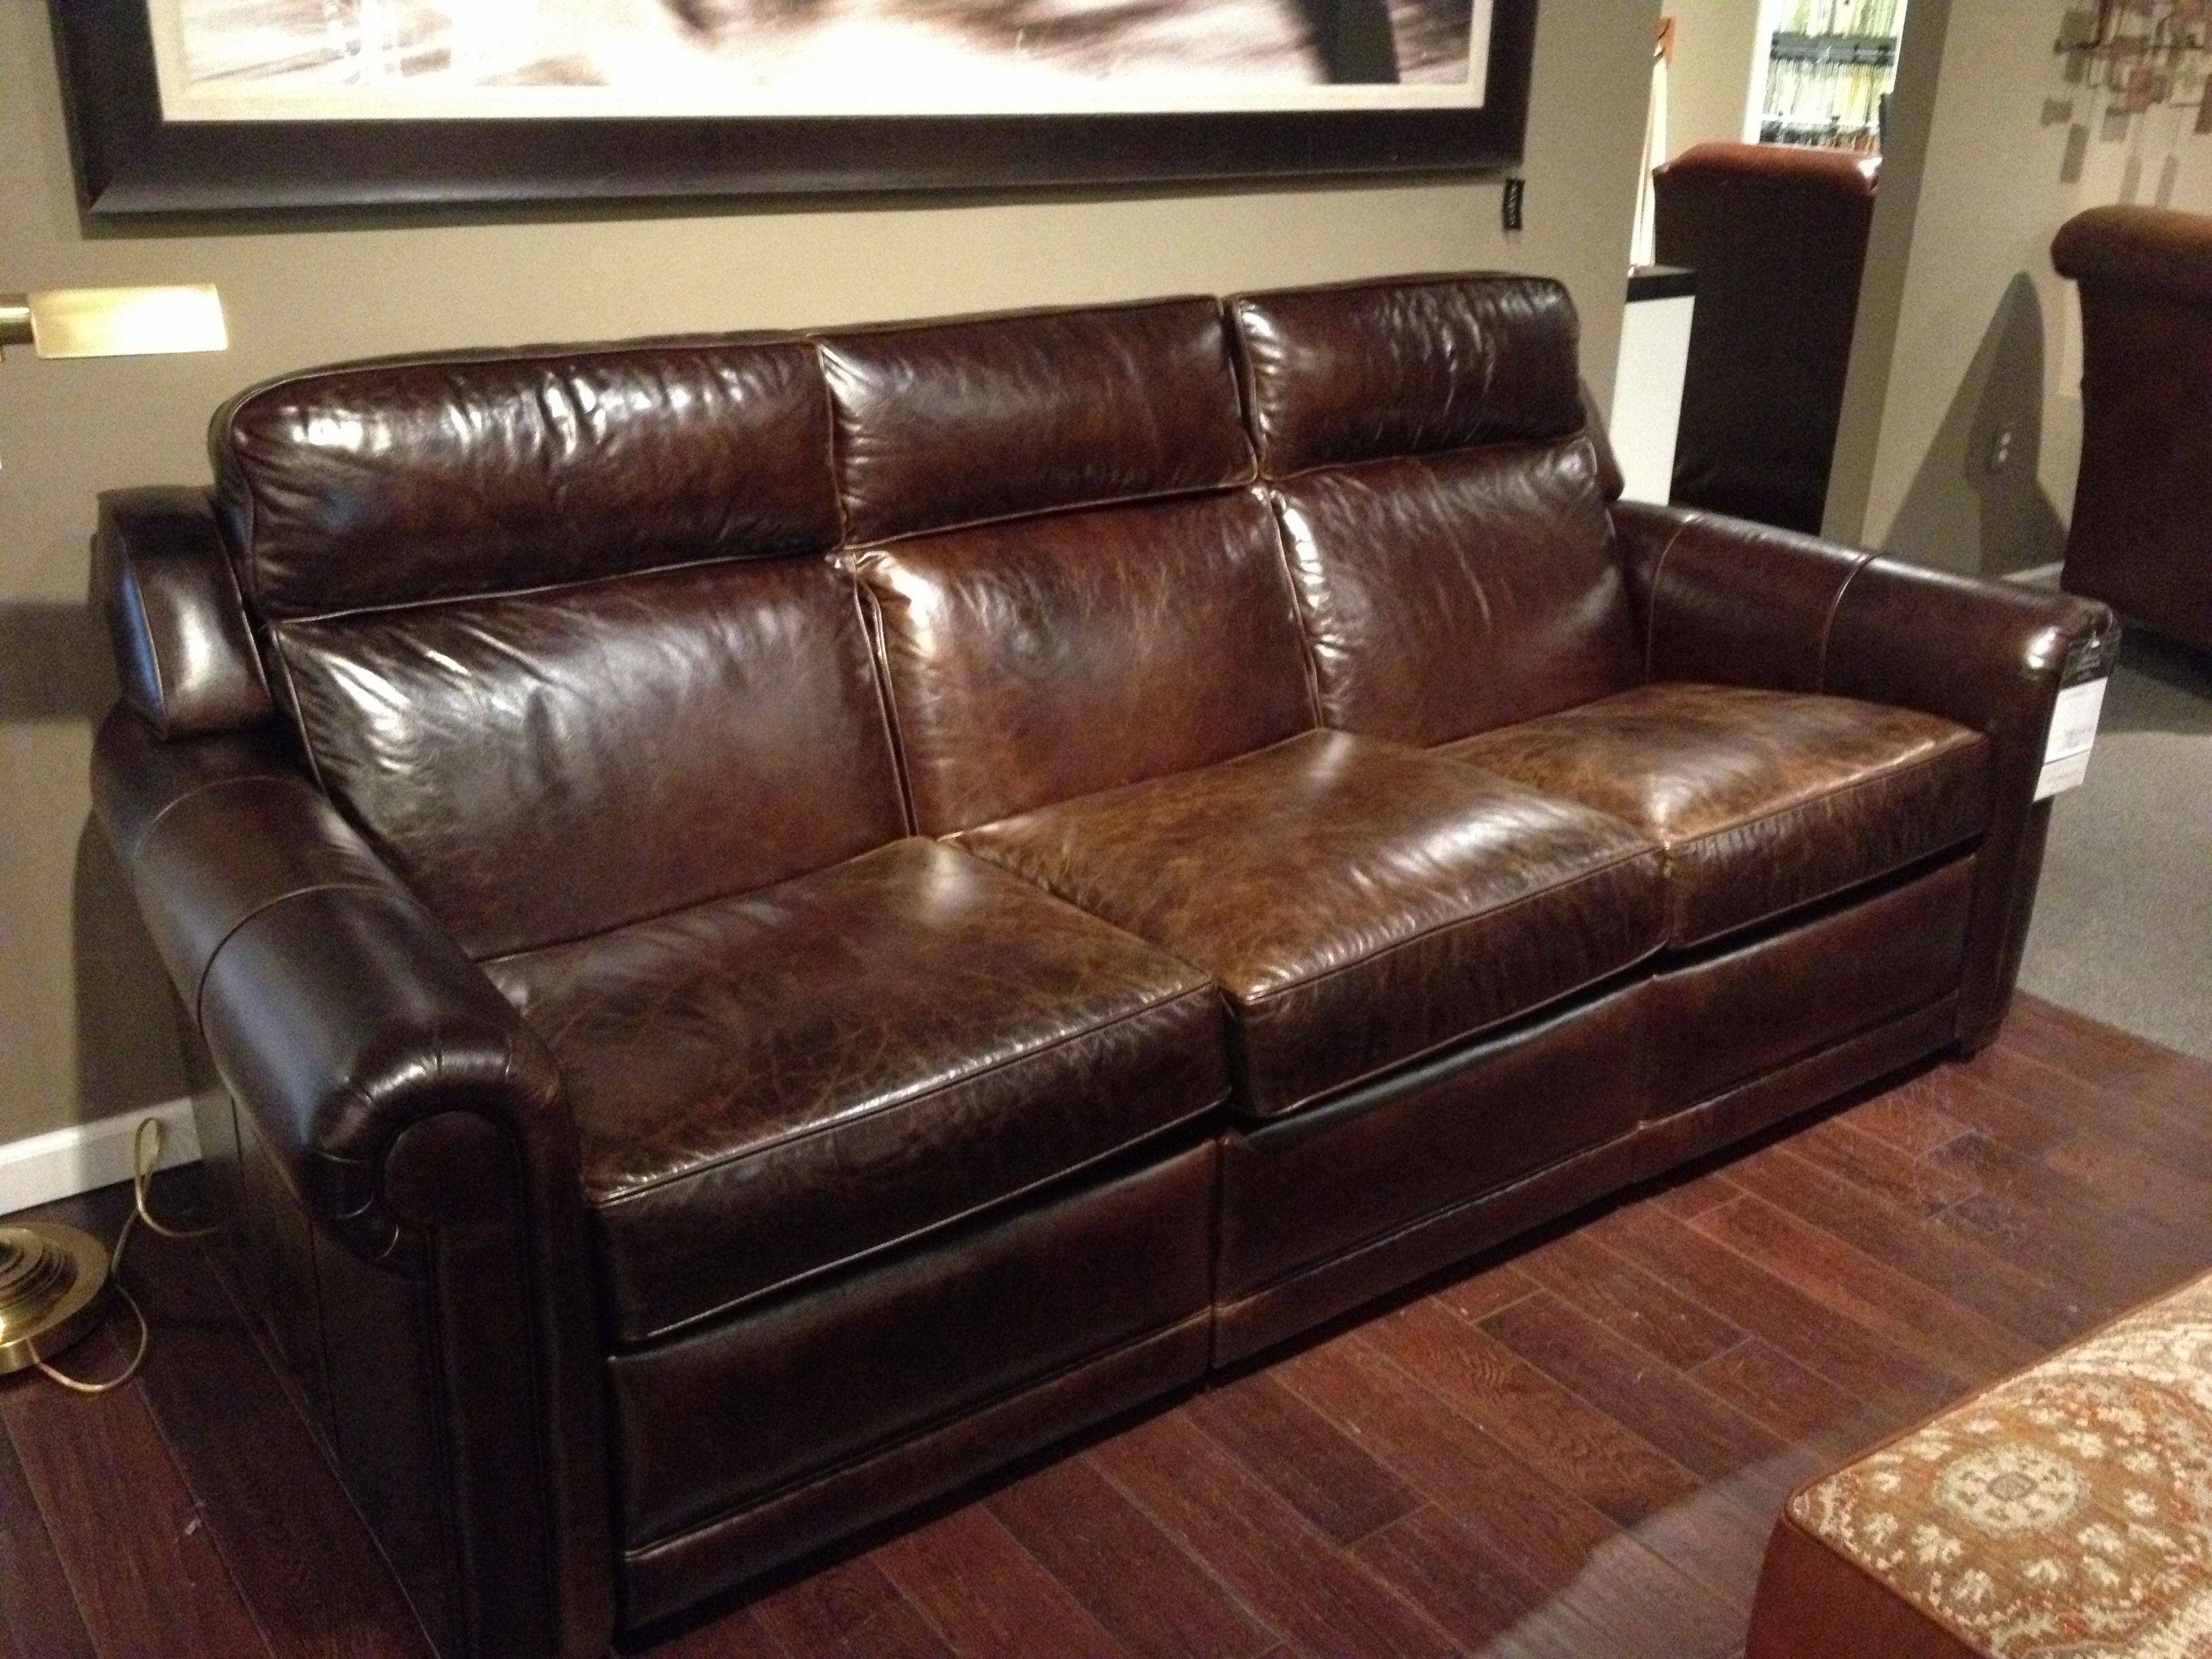 Recliner Sofa Ethan Allen New Reclining Sofa From Ethan Allen Very Comfortable New